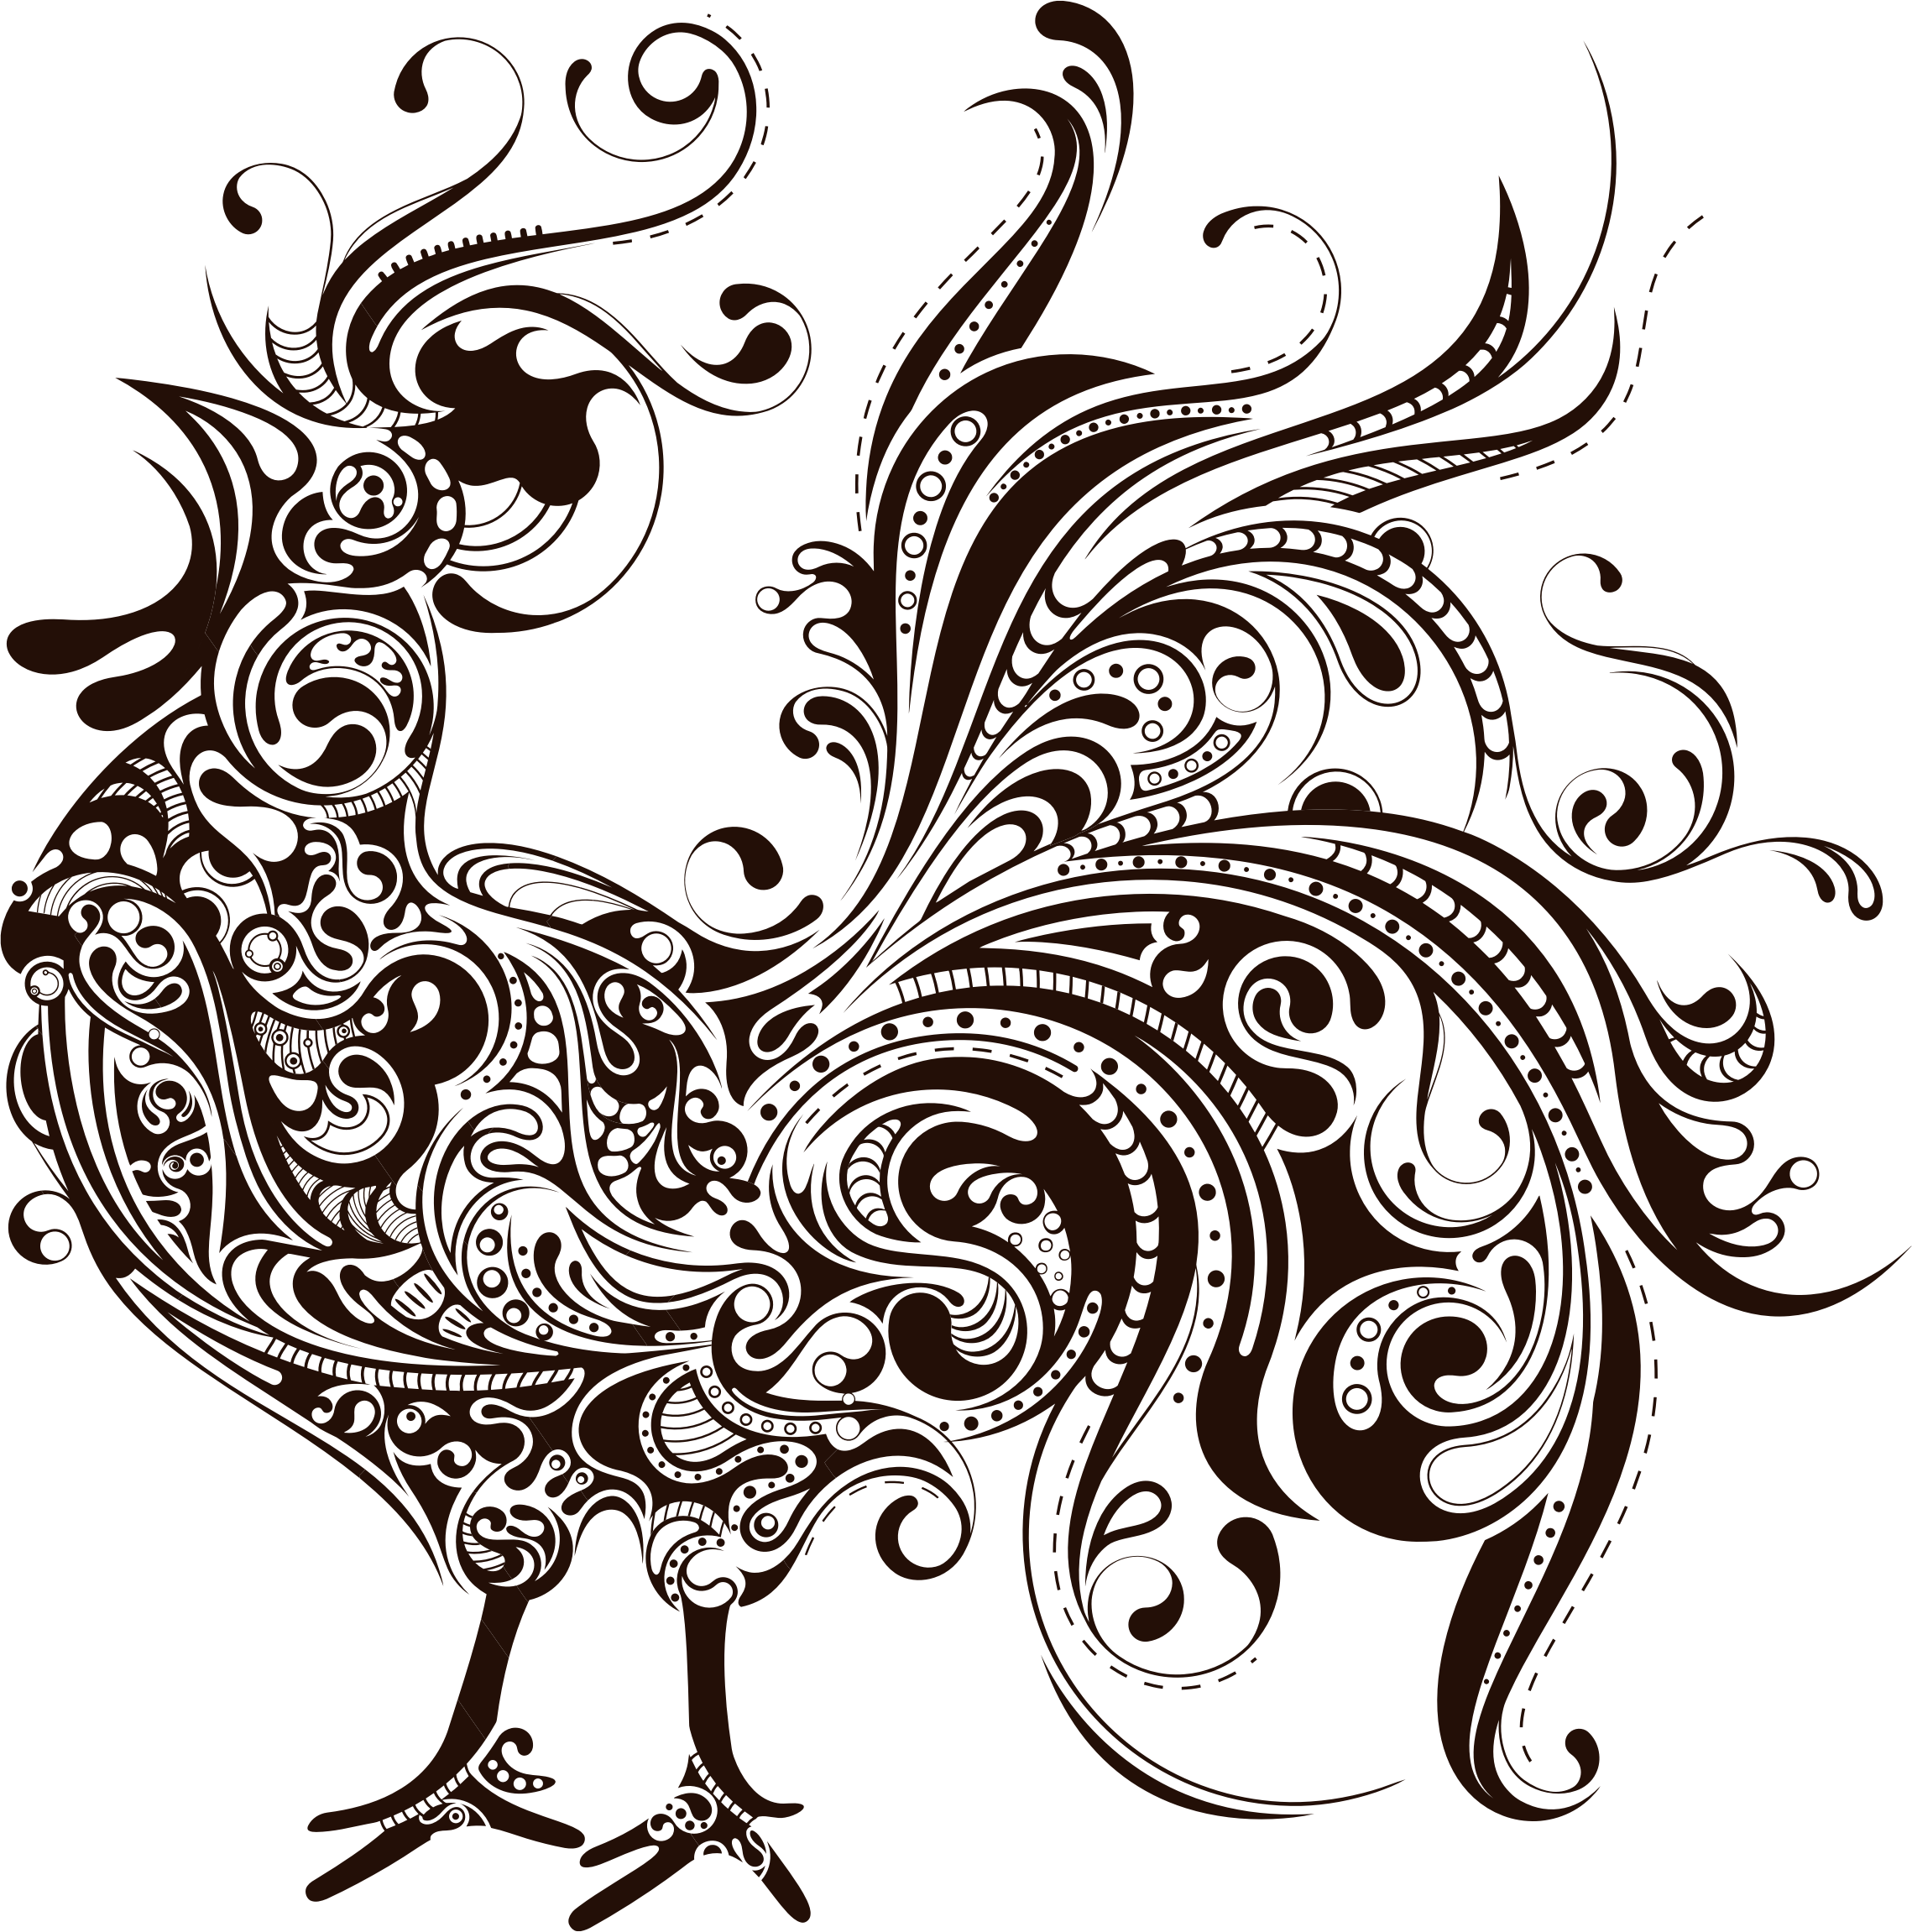 Abstract Rooster Silhouette by GDJ